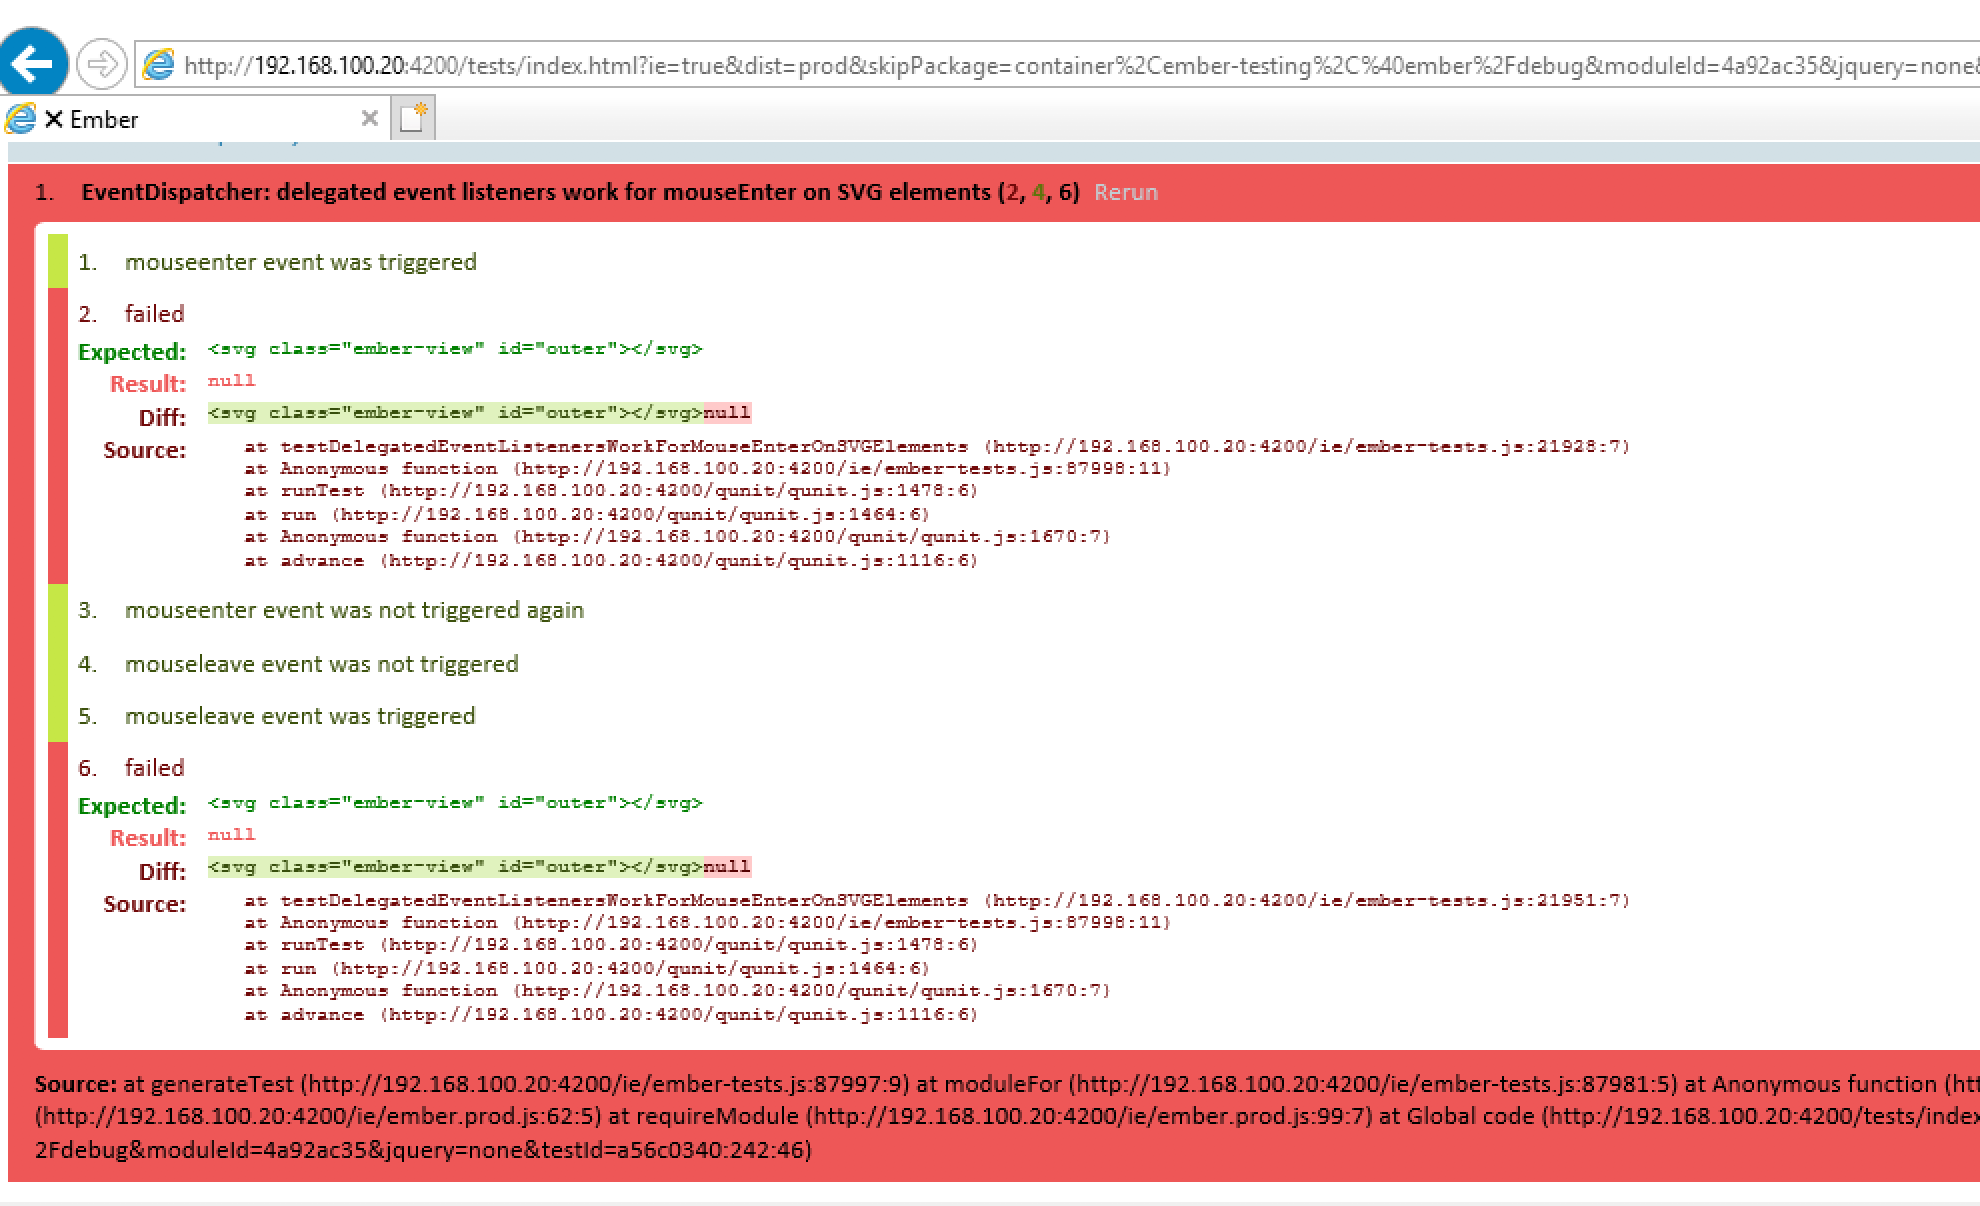 Event target not set for mouseEnter/Leave w/o jQuery in IE11